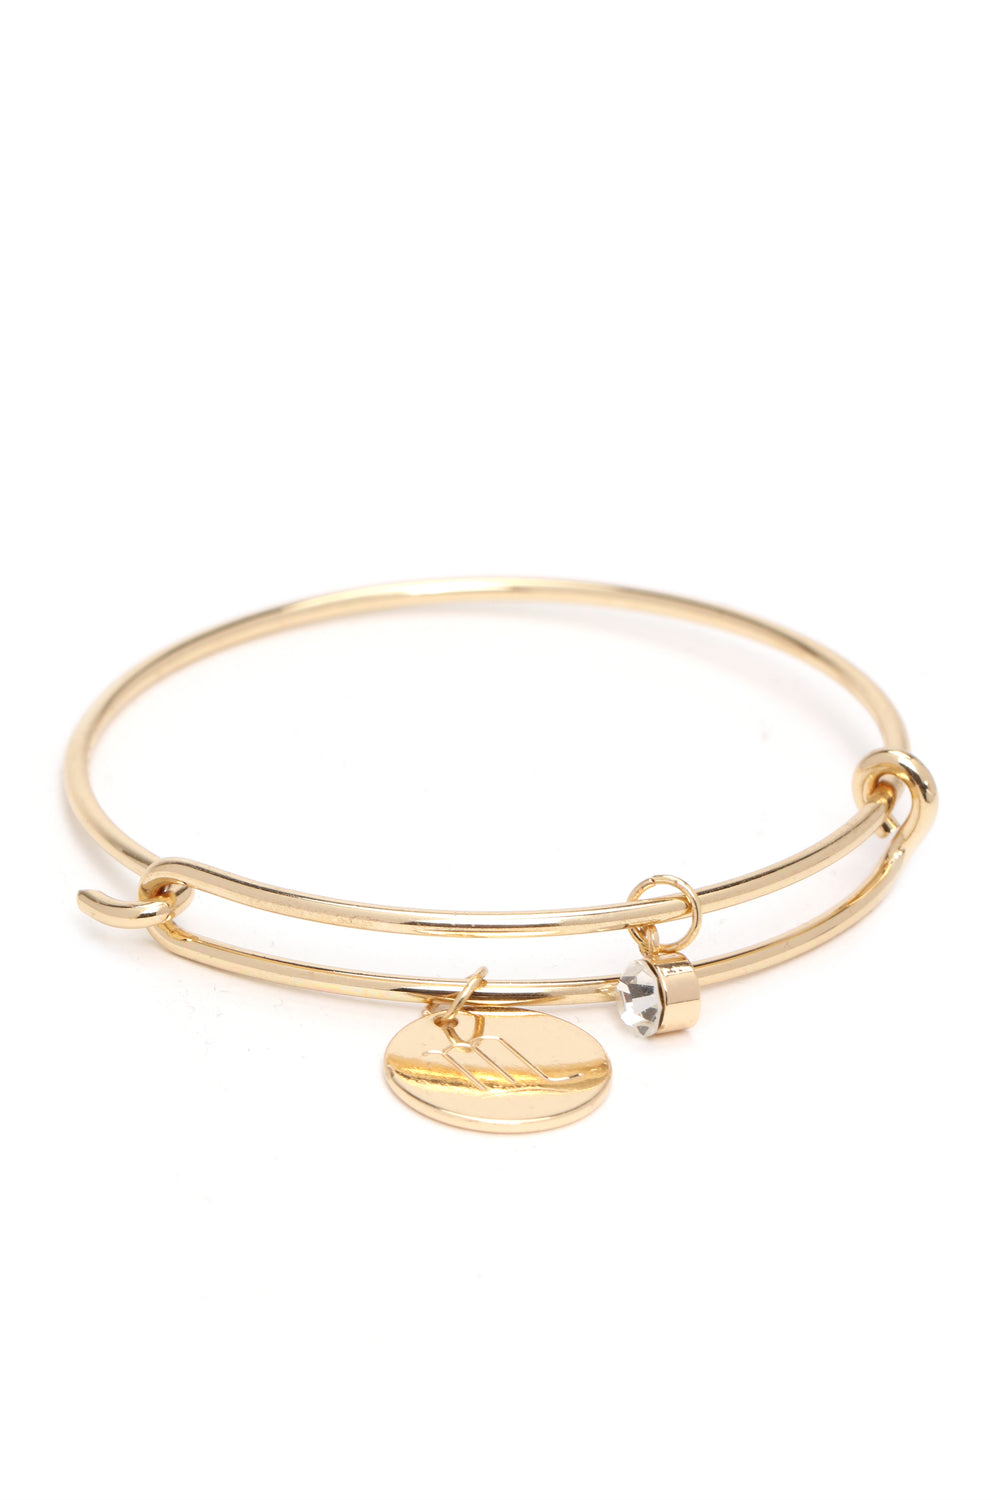 Scorpio Please Sign Here Bracelet - Gold